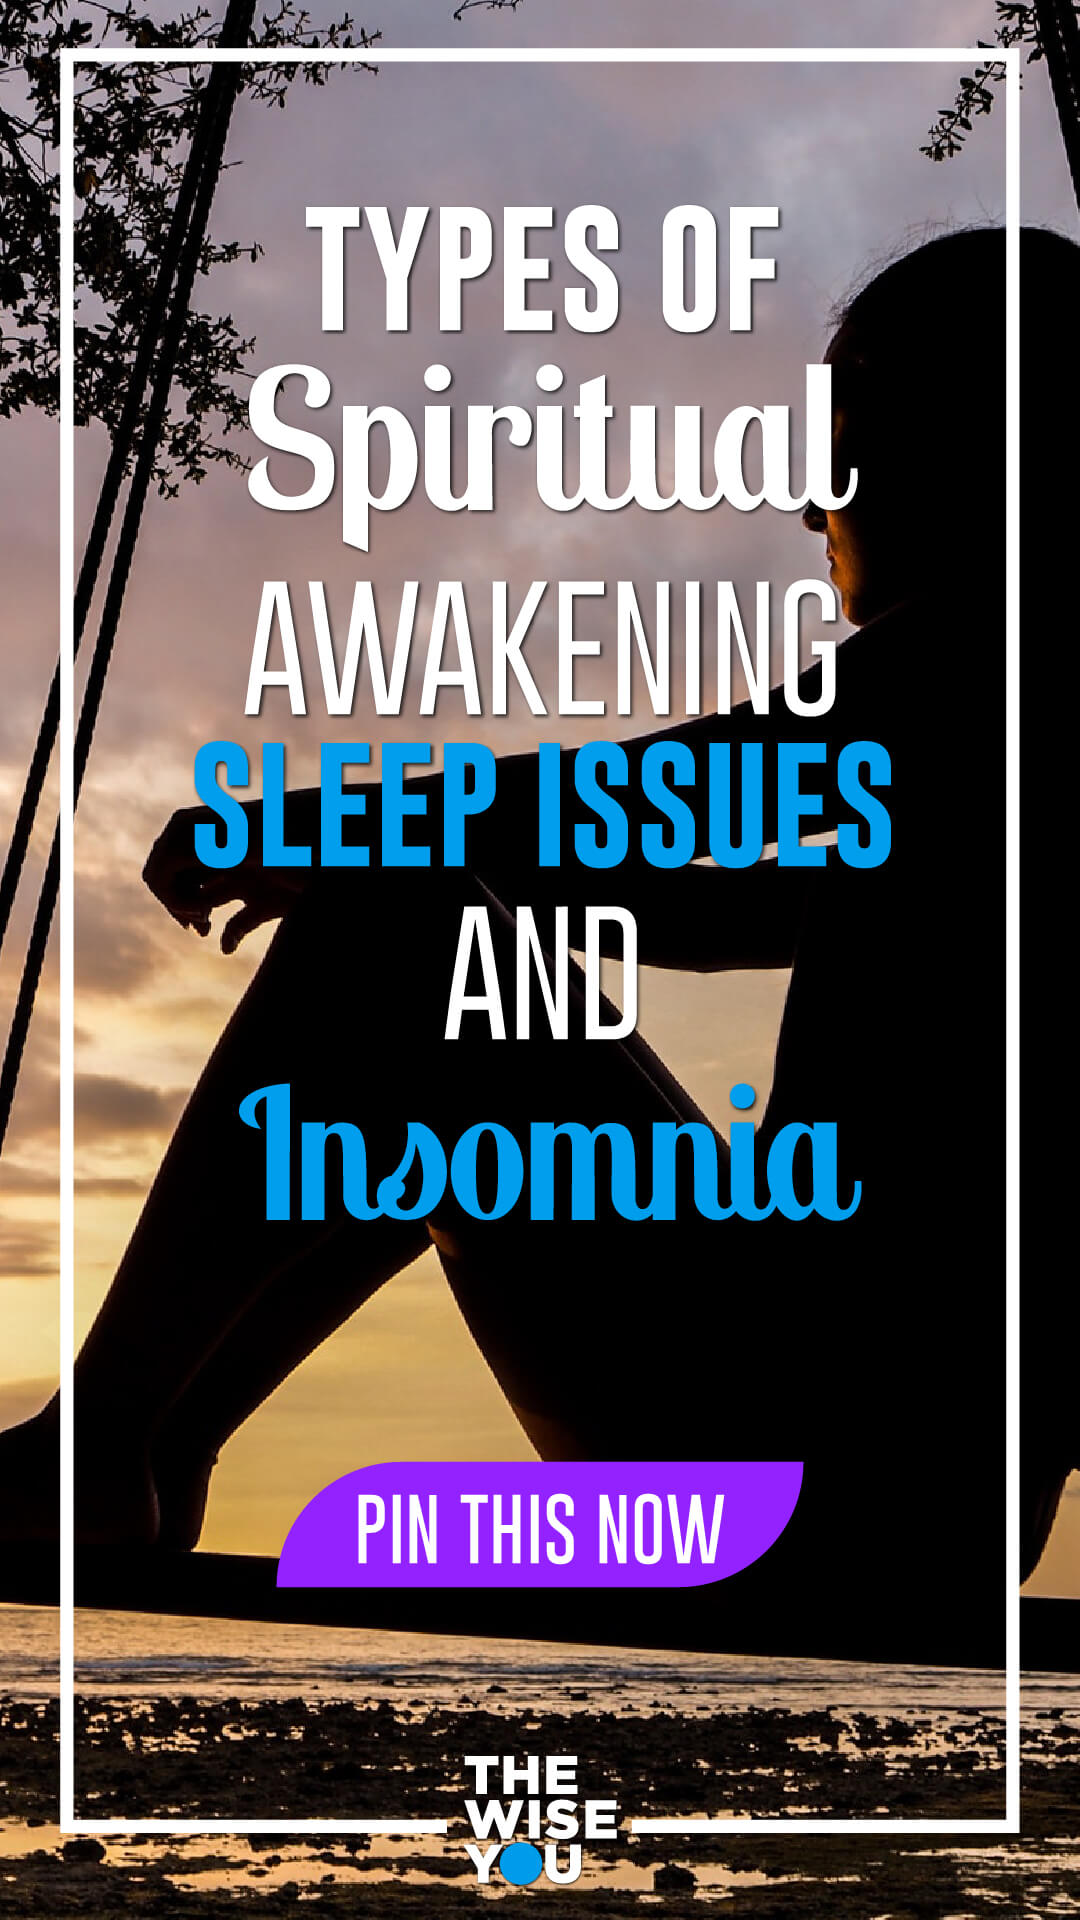 Types of Spiritual Awakening Sleep Issues and Insomnia